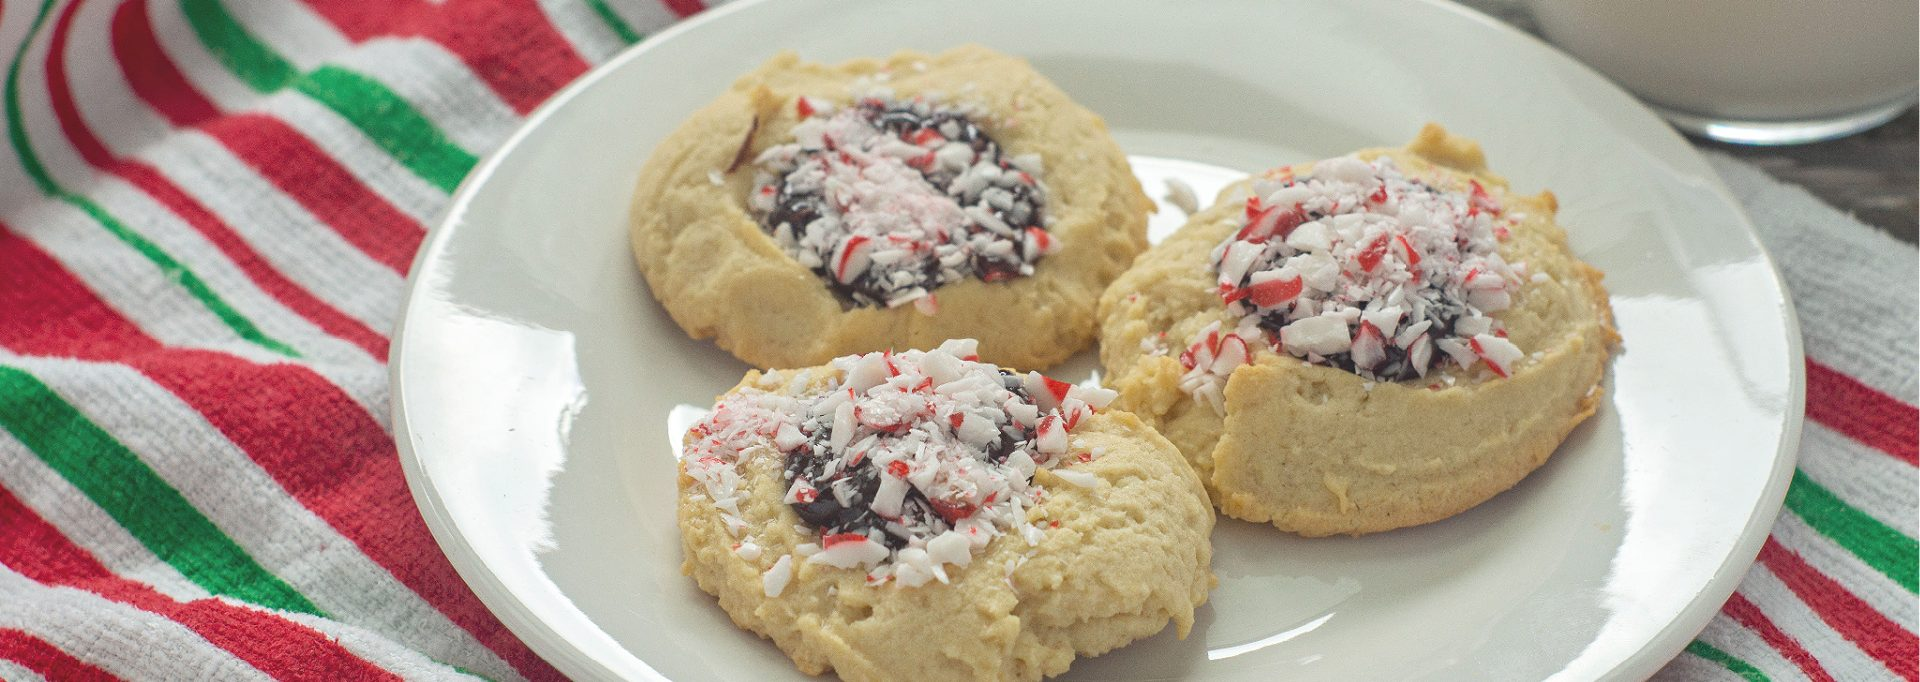 Chocolate Peppermint Ganache Cookies Feature